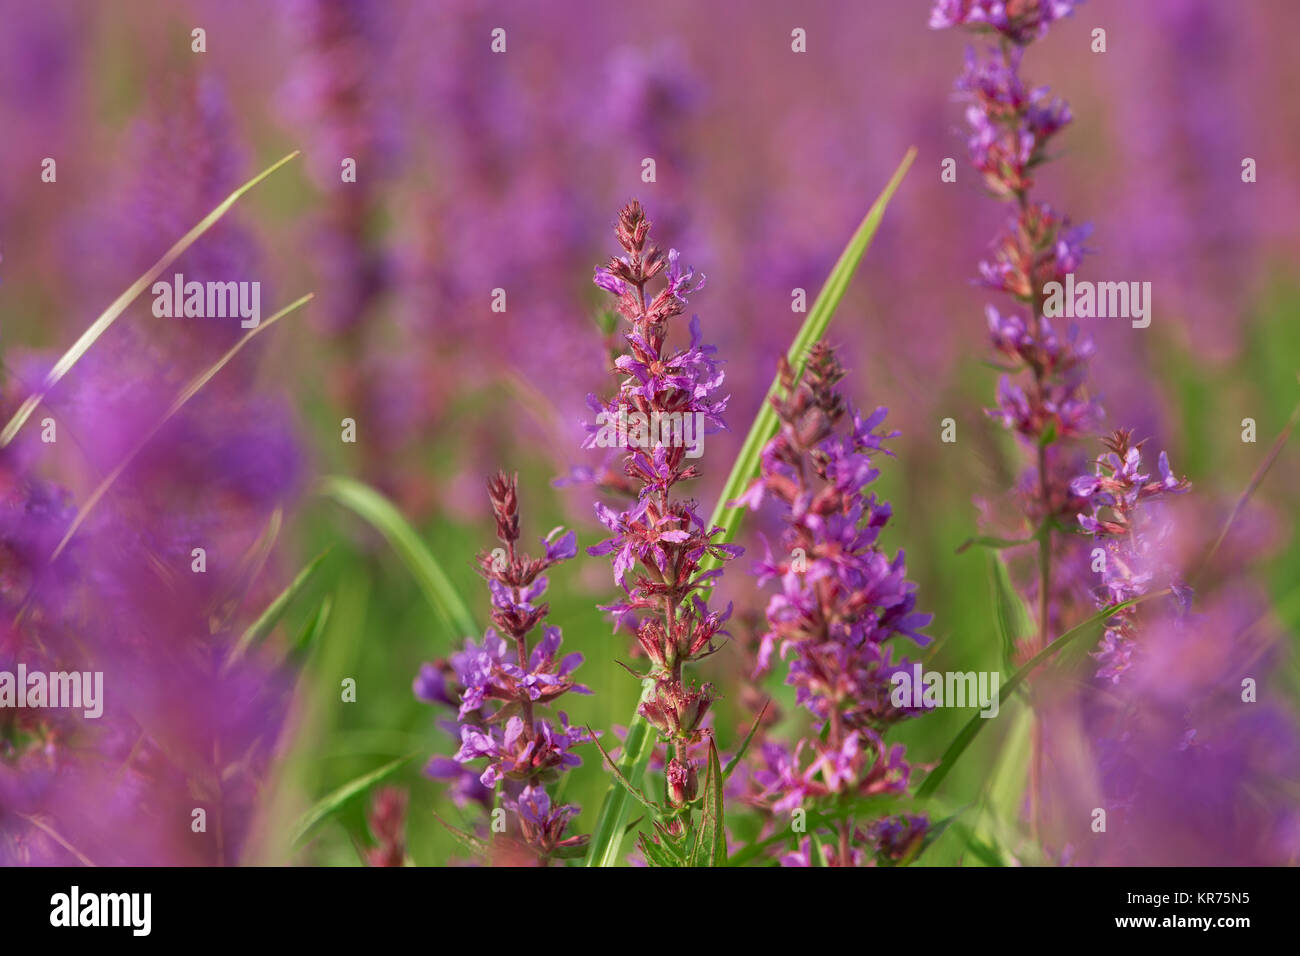 Tall Pink Flowers In Summer Meadow Stock Photo 169188577 Alamy